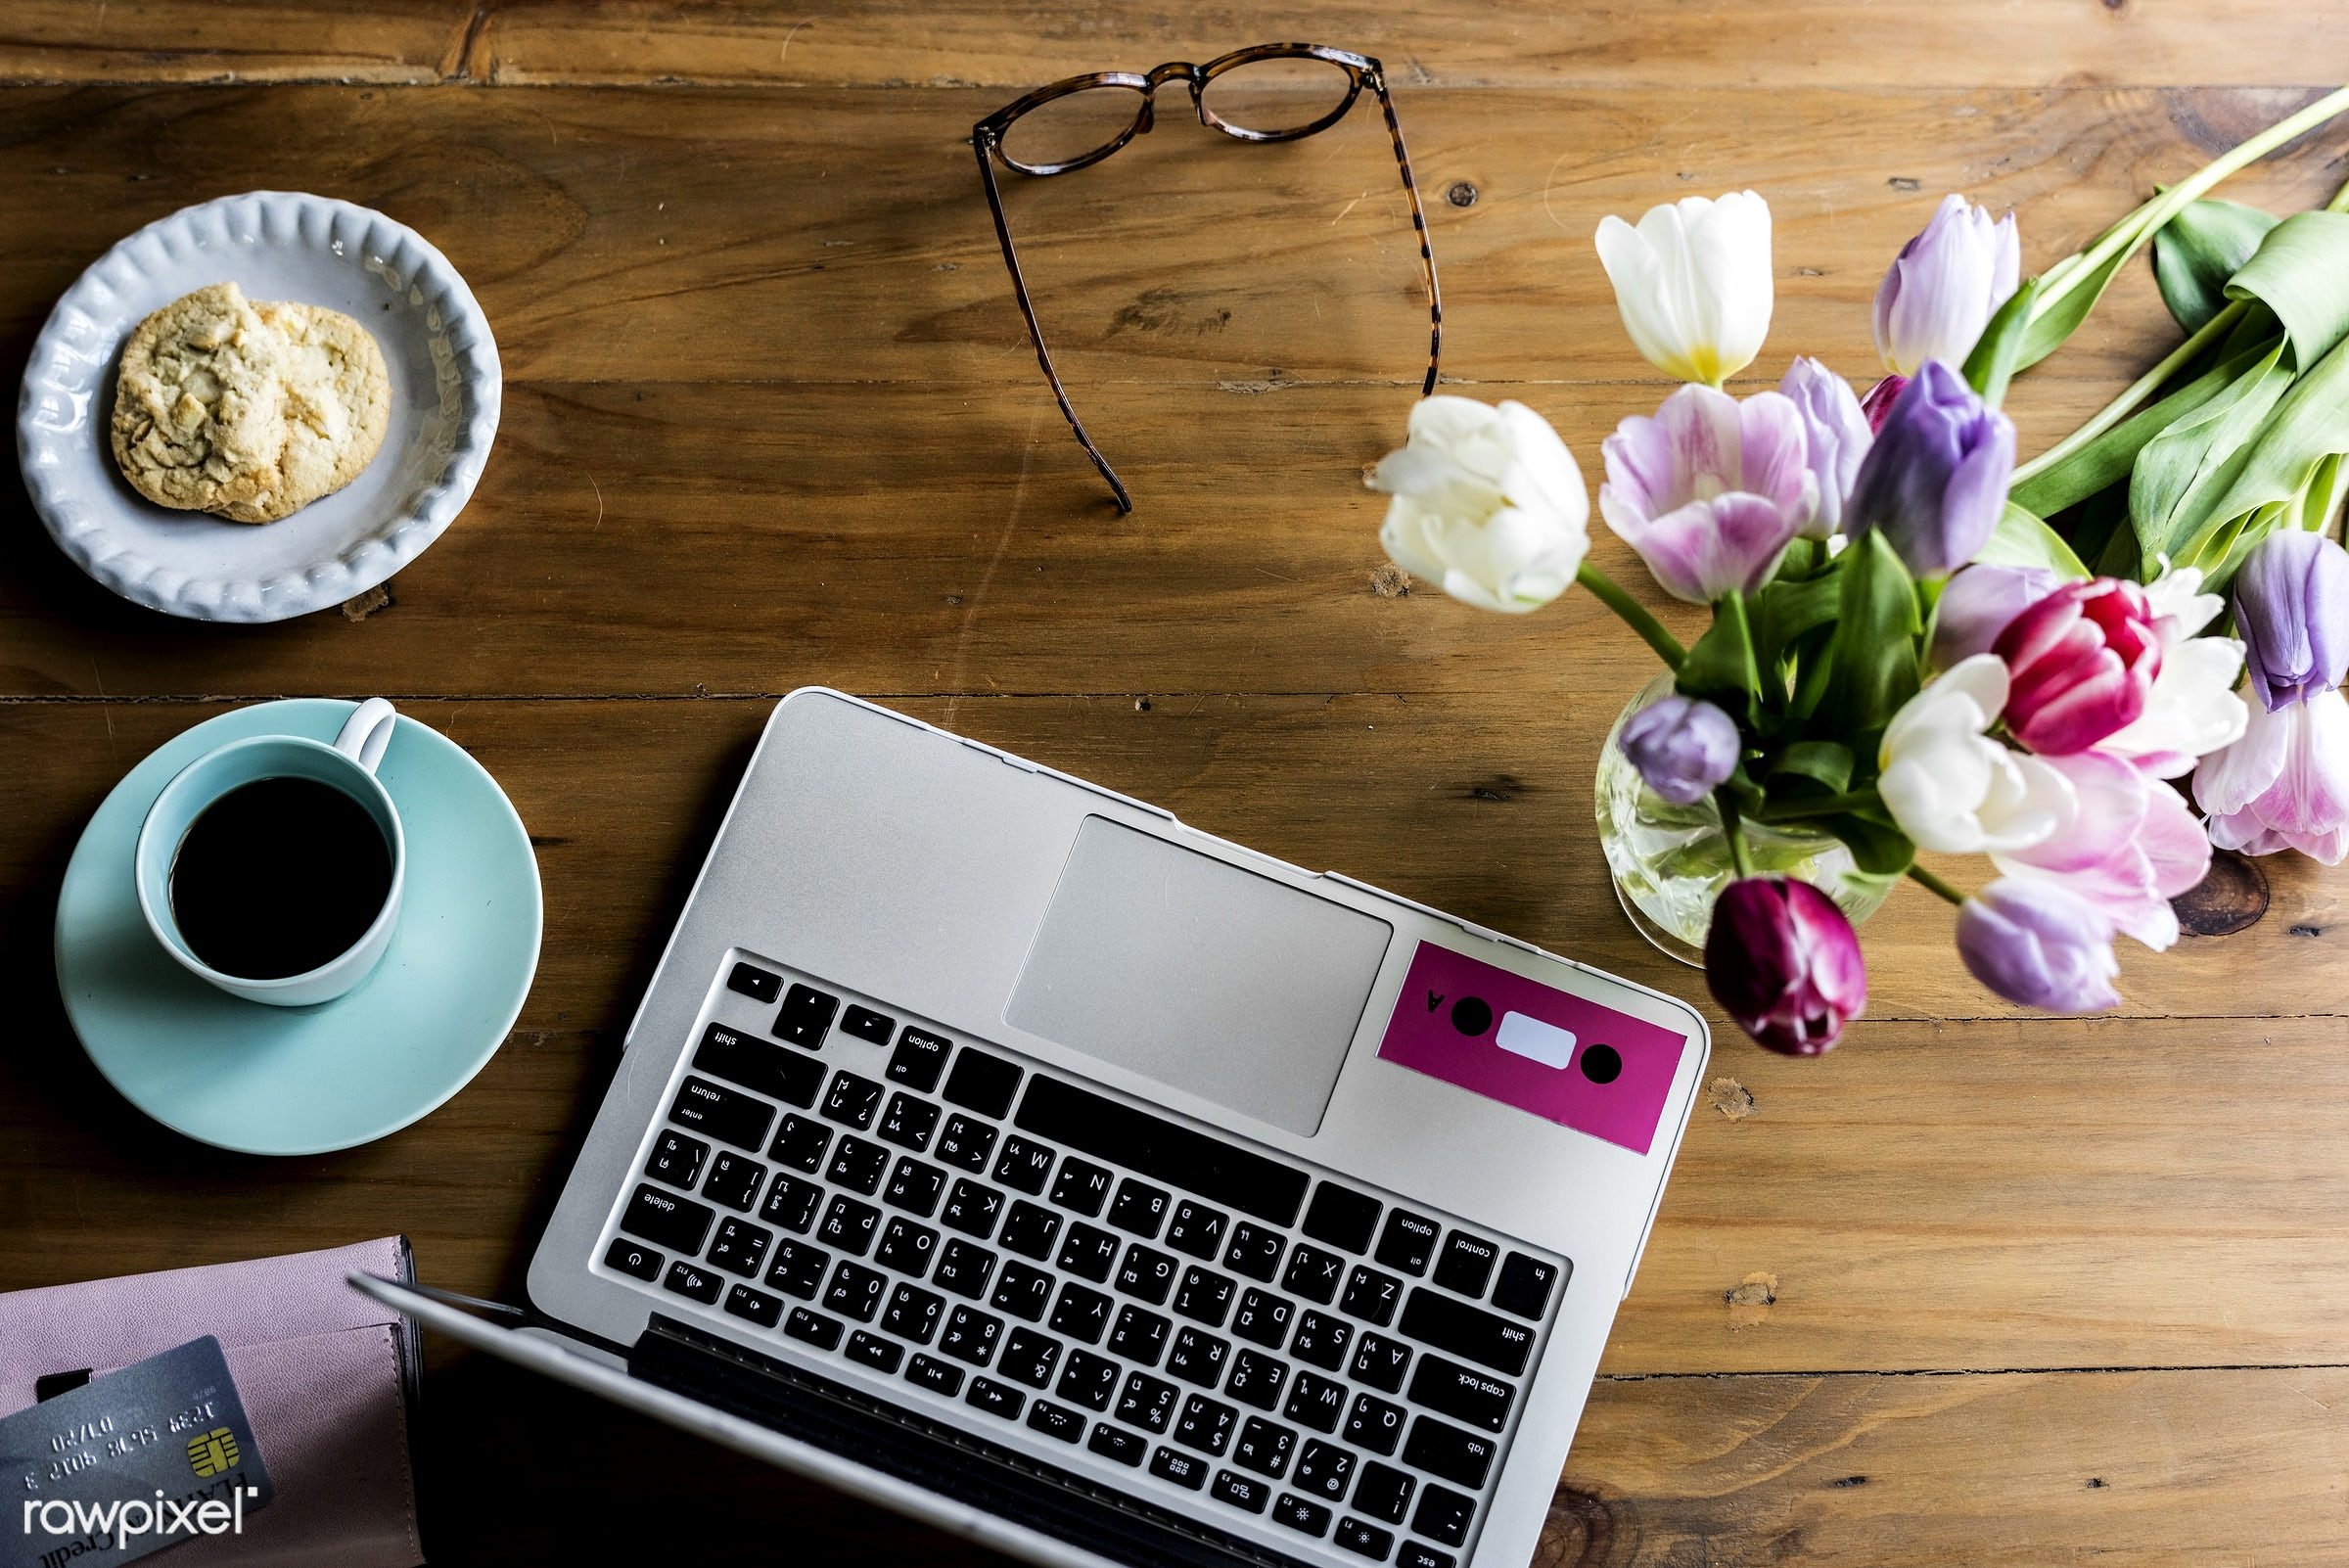 technology, glasses, purse, workspace, workplace, desk, beauty, leaf, blossom, nature, fresh, laptop, aerial view, refresh,...